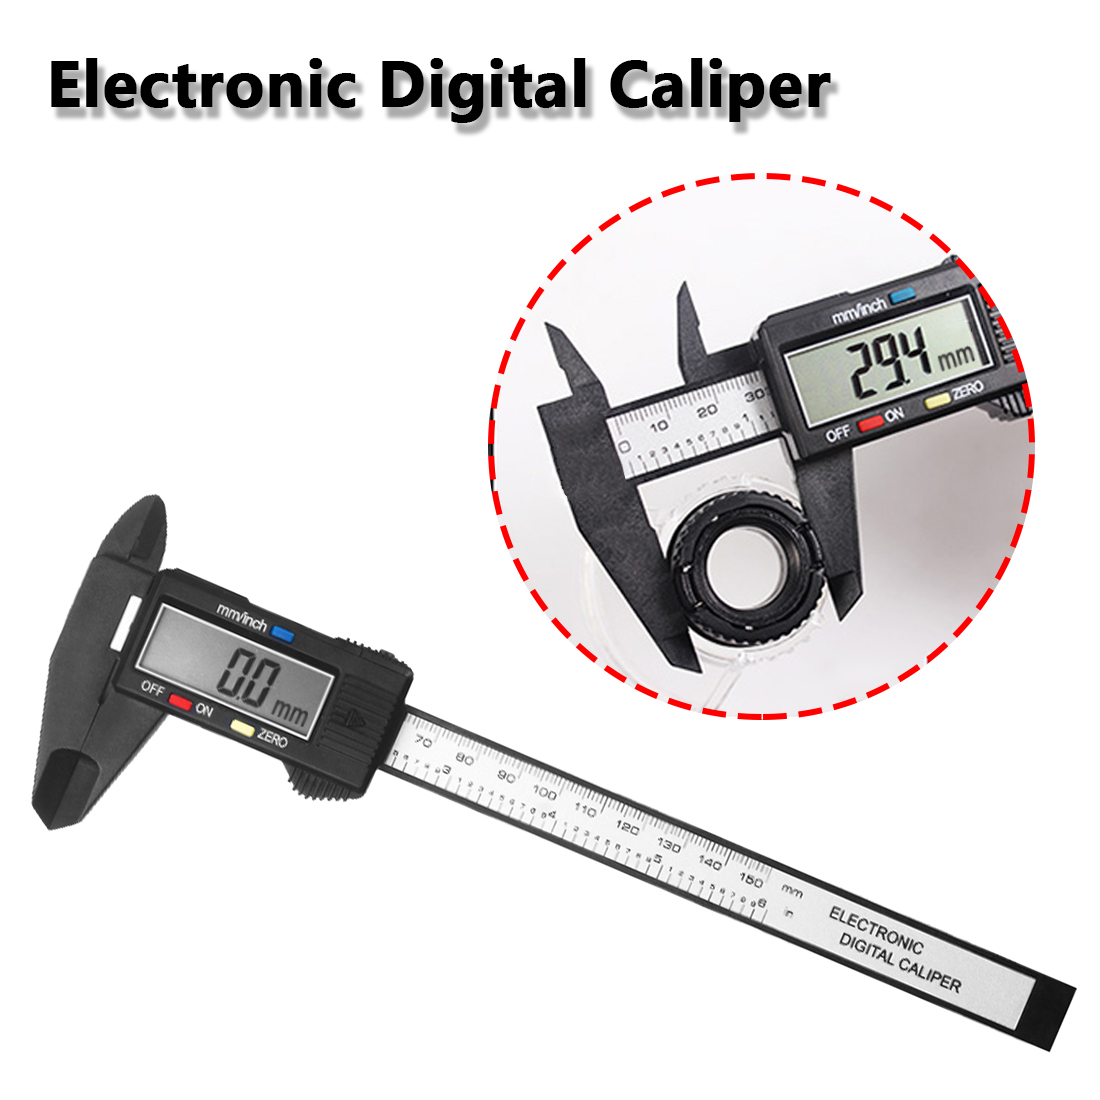 Carbon Fiber LCD Digital Electronic Vernier Caliper Gauge Micrometer Measuring Tool Ruler Digital Calipers 150mm 6inch shan 12 0 300mm 0 01 electronic digital calipers micrometer inch mm vernier caliper gauge large lcd display measuring tools